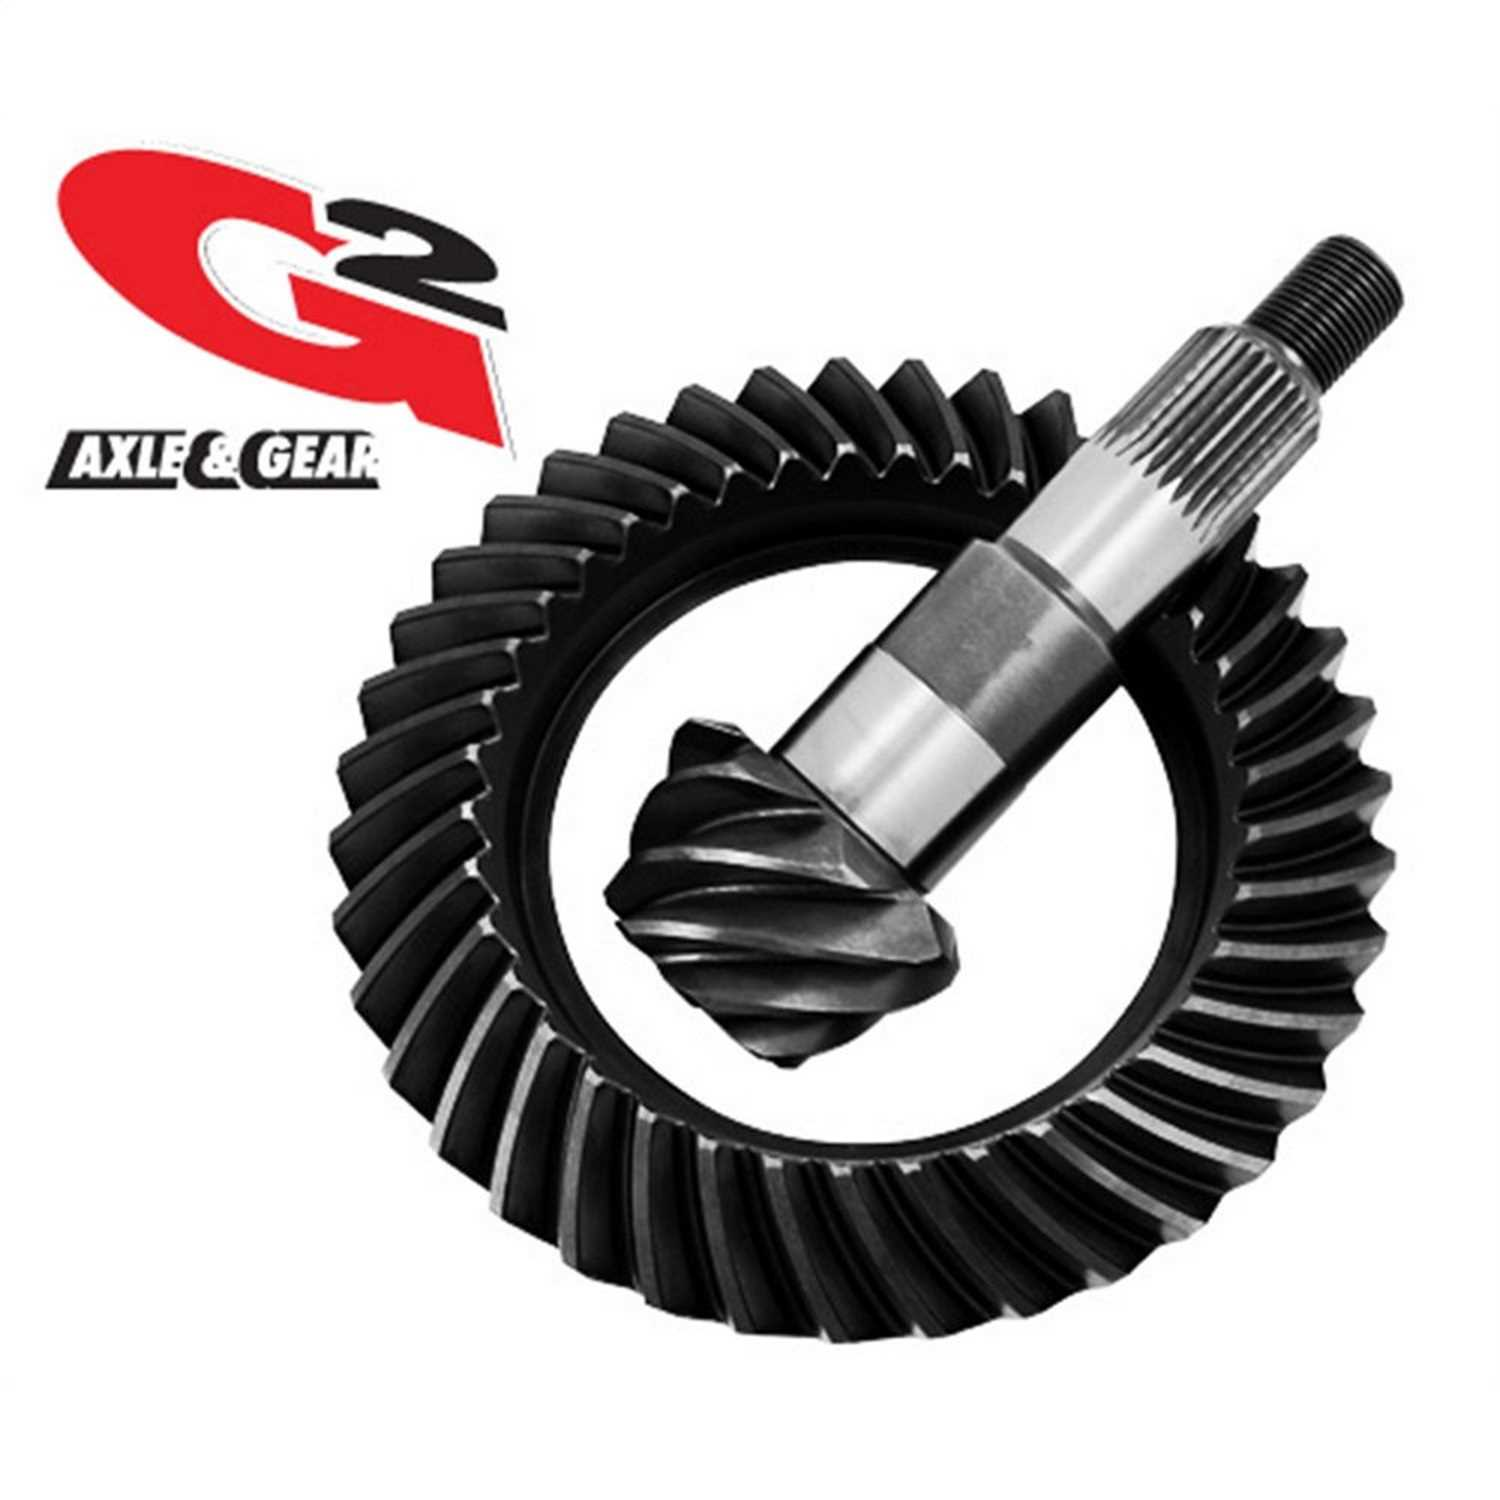 2-2028-488 G2 Axle and Gear Ring and Pinion Set